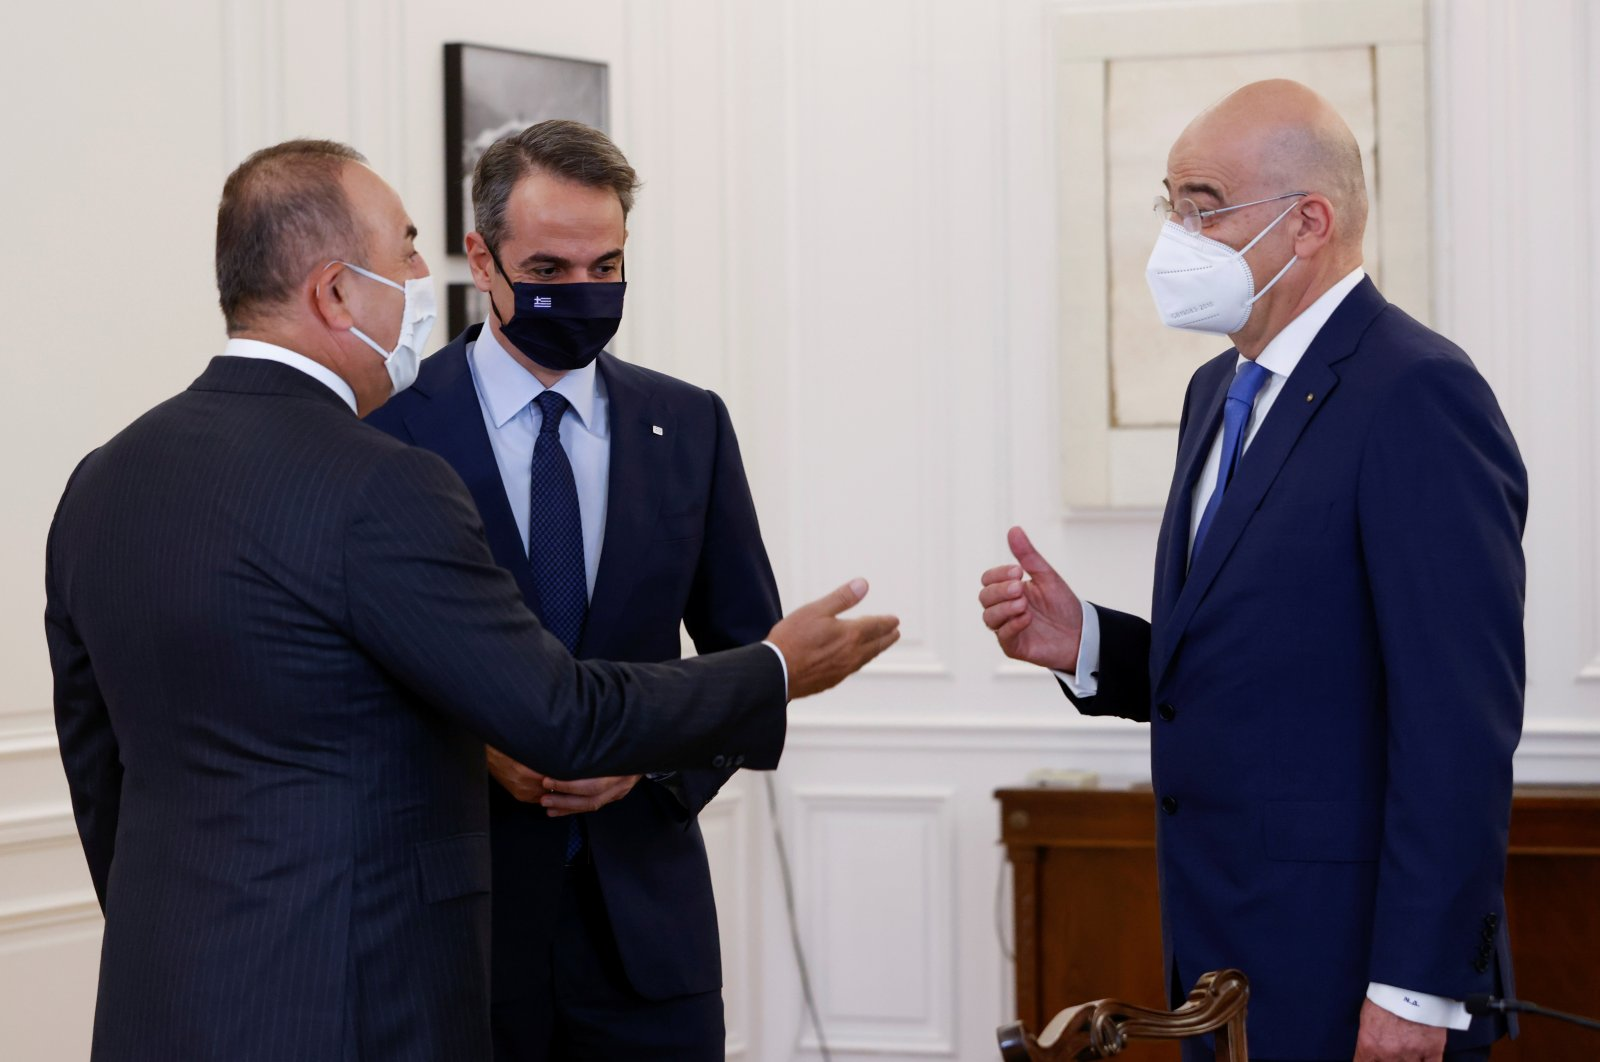 Turkish Foreign Minister Mevlüt Çavuşoğlu (L), Greek Prime Minister Kyriakos Mitsotakis (C) and Greek Foreign Minister Nikos Dendias meet at the Maximos Mansion in Athens, Greece, May 31, 2021. (REUTERS Photo)